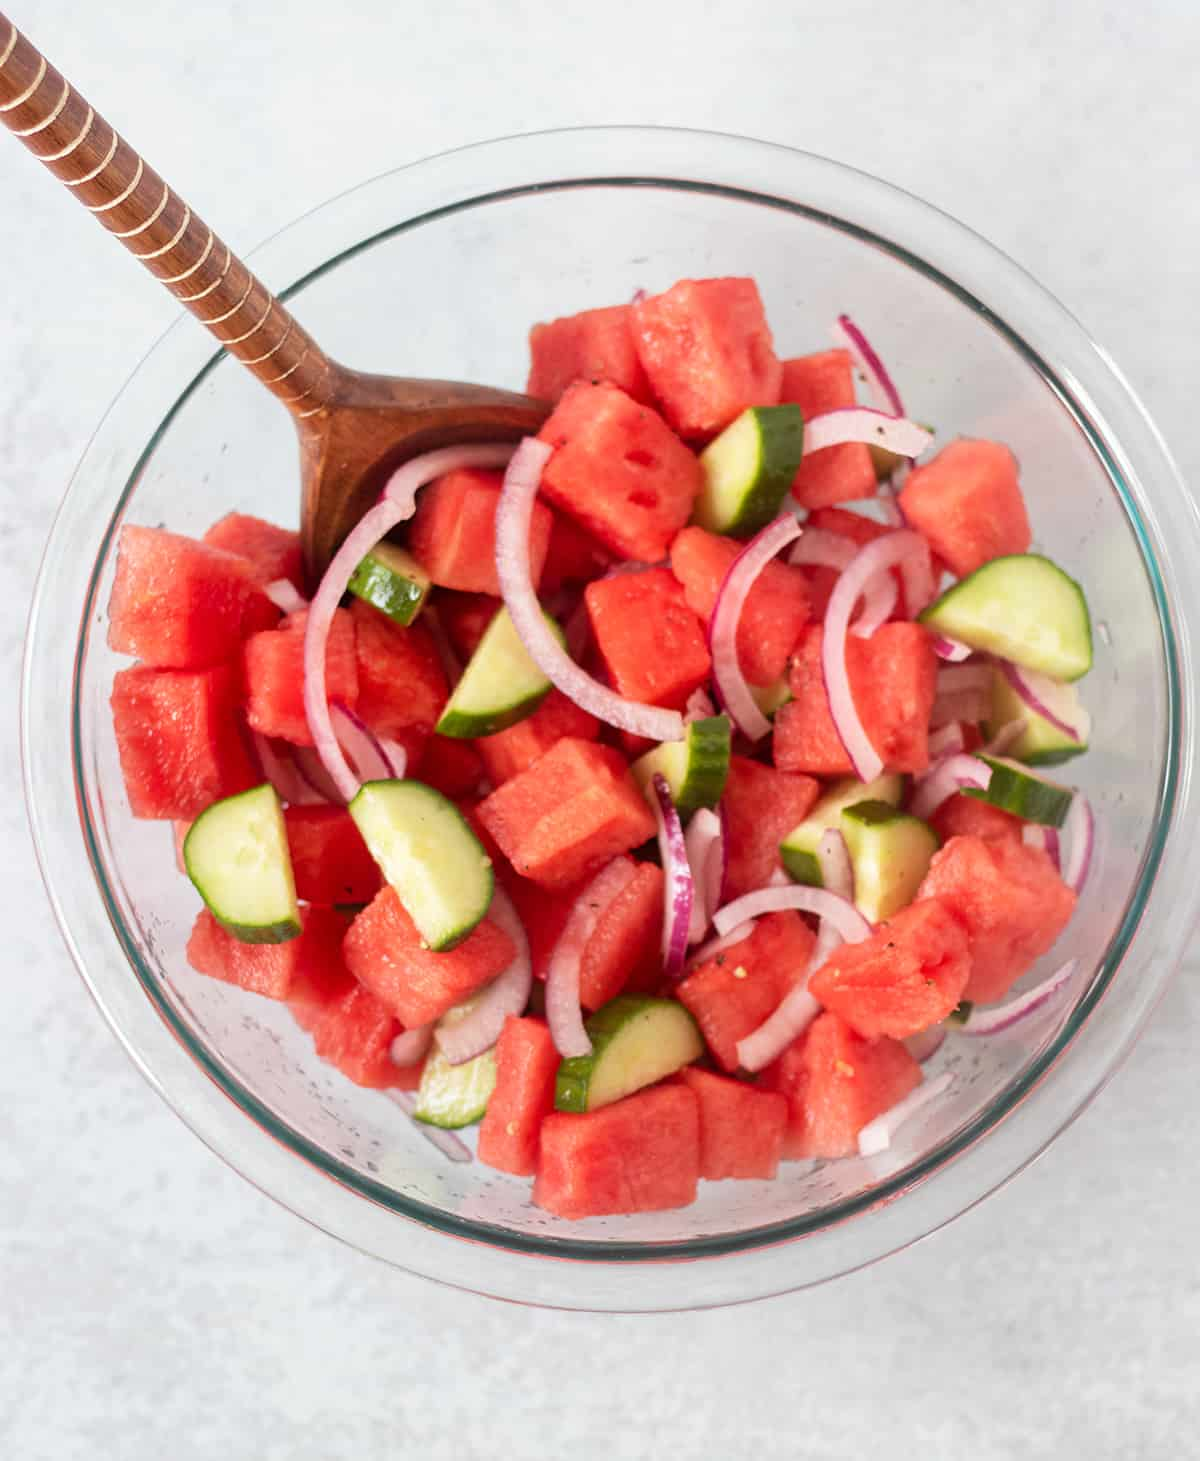 watermelon, cucumber, red onion in clear glass mixing bowl.